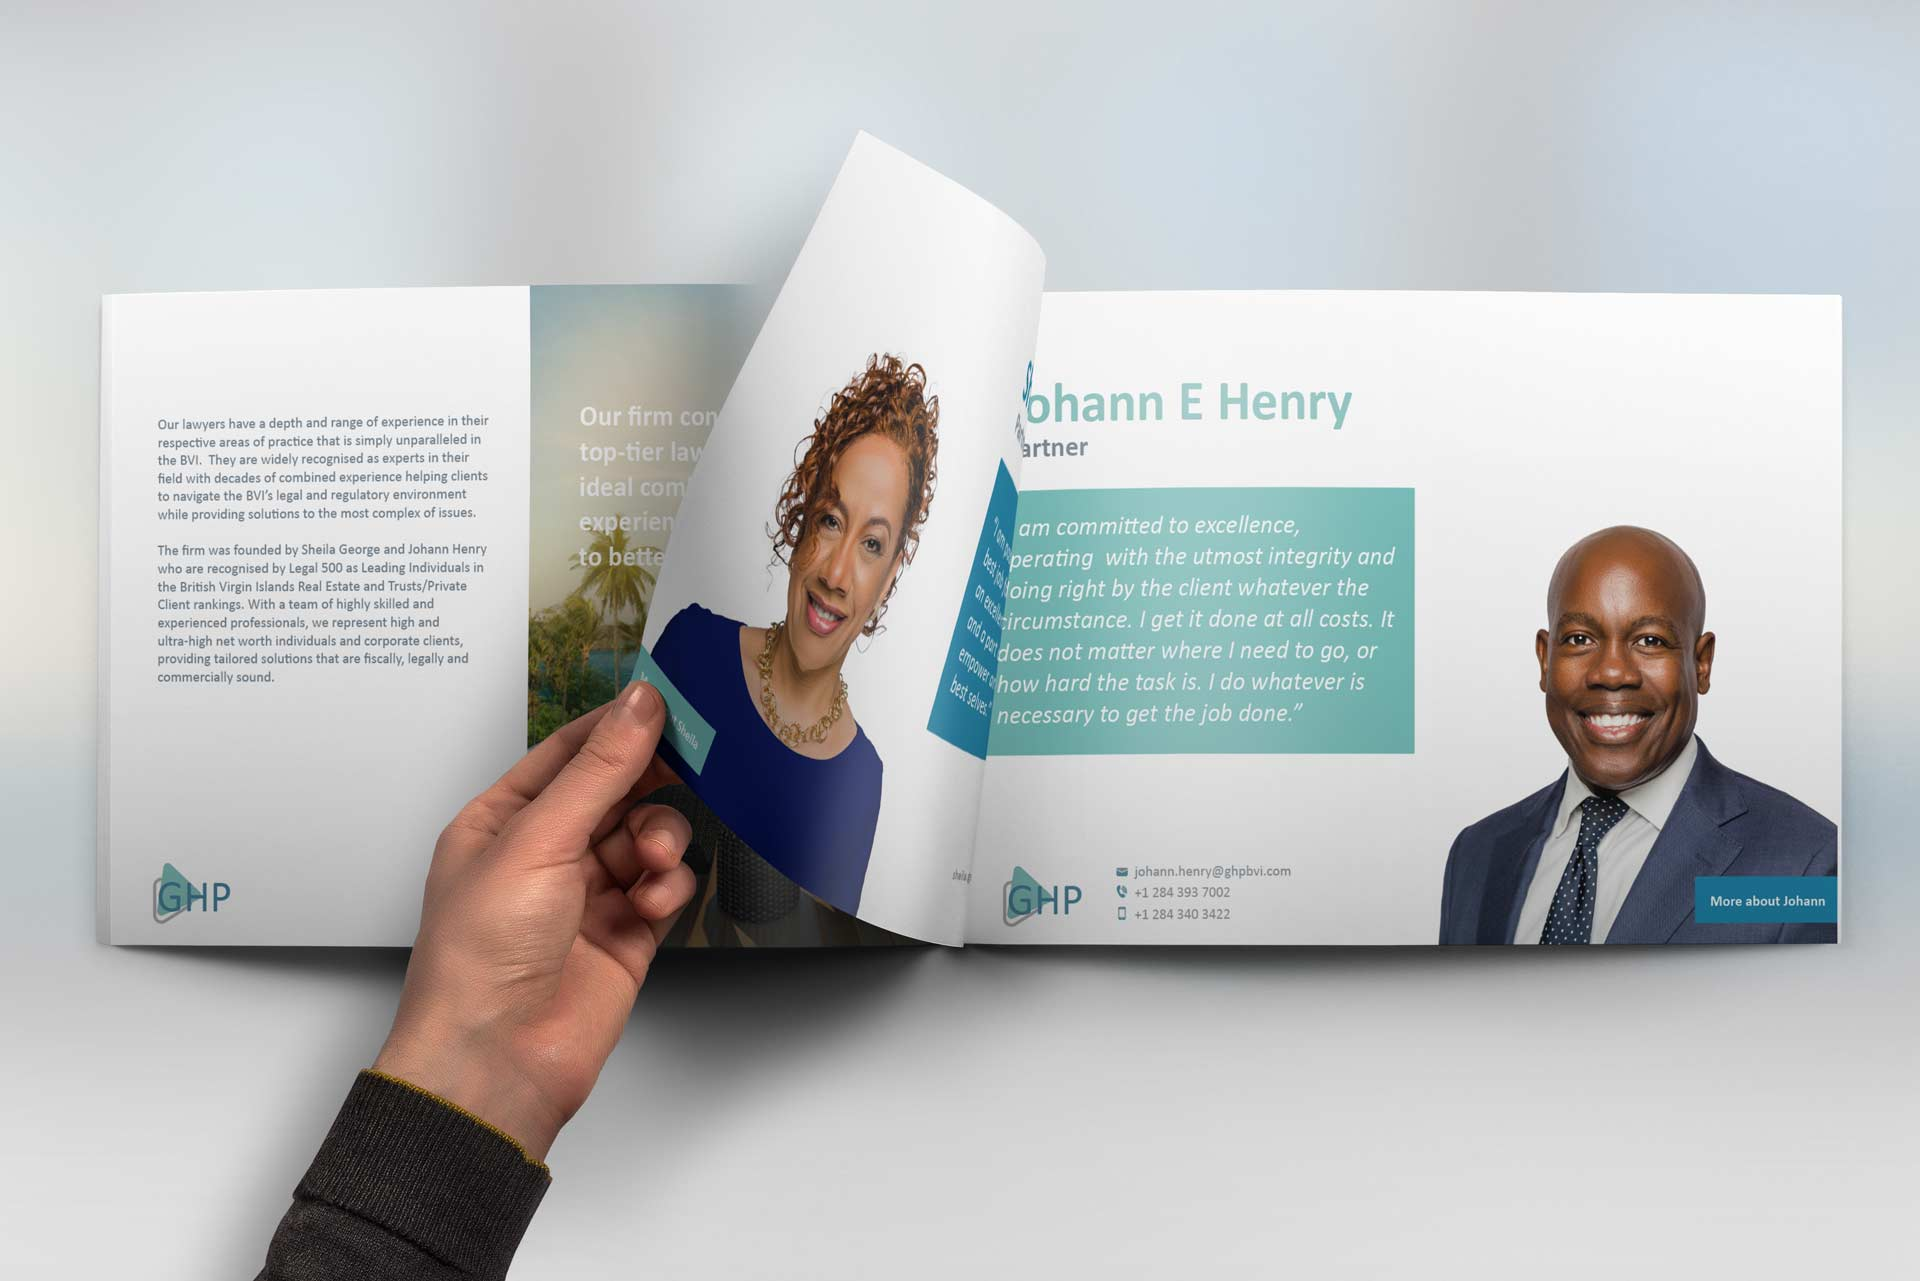 A Hand turning a page of a printed and bound corporate brochure